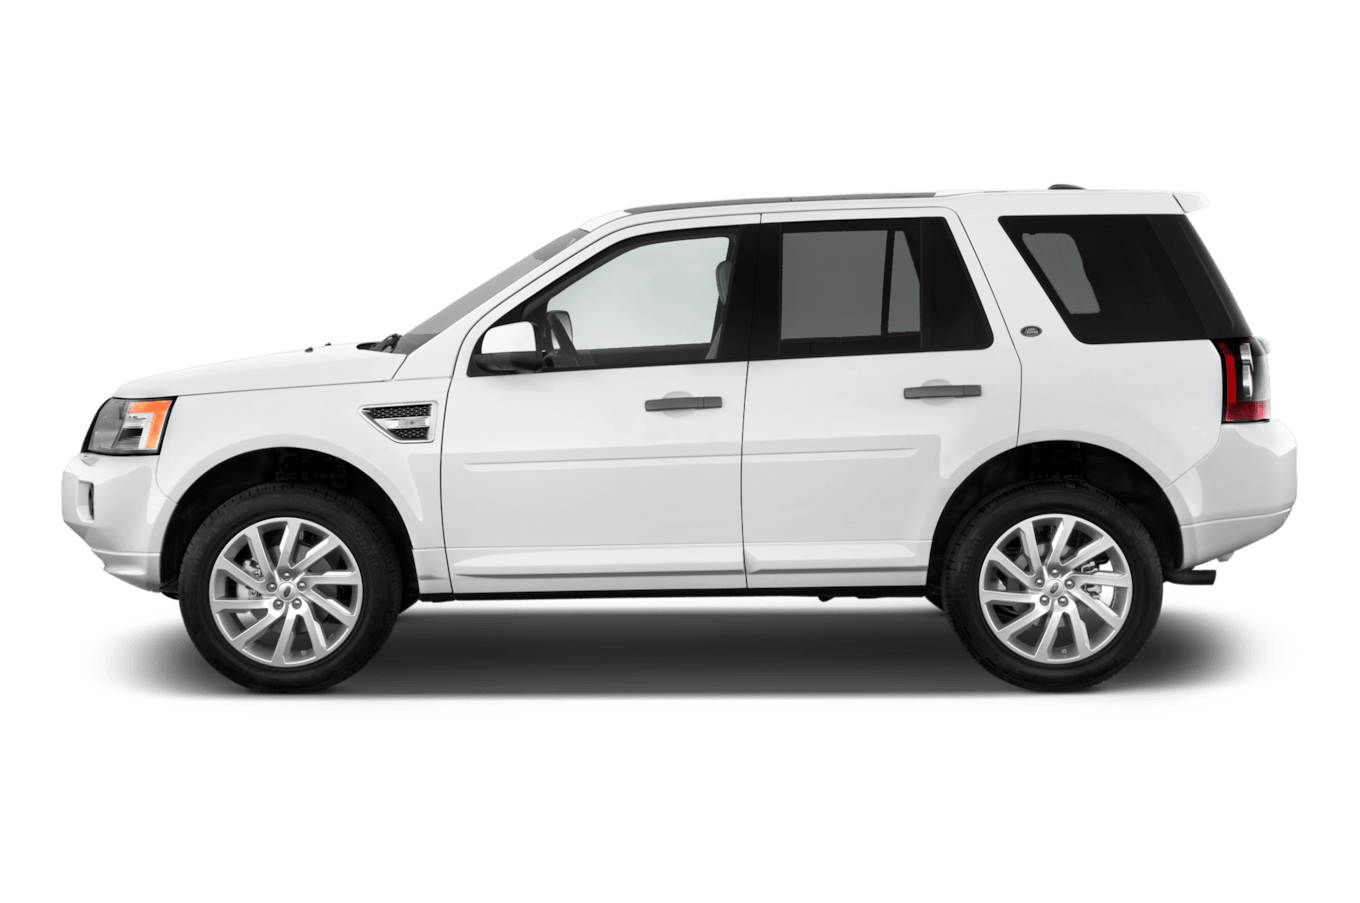 2011 Land Rover LR2 Reviews and Rating